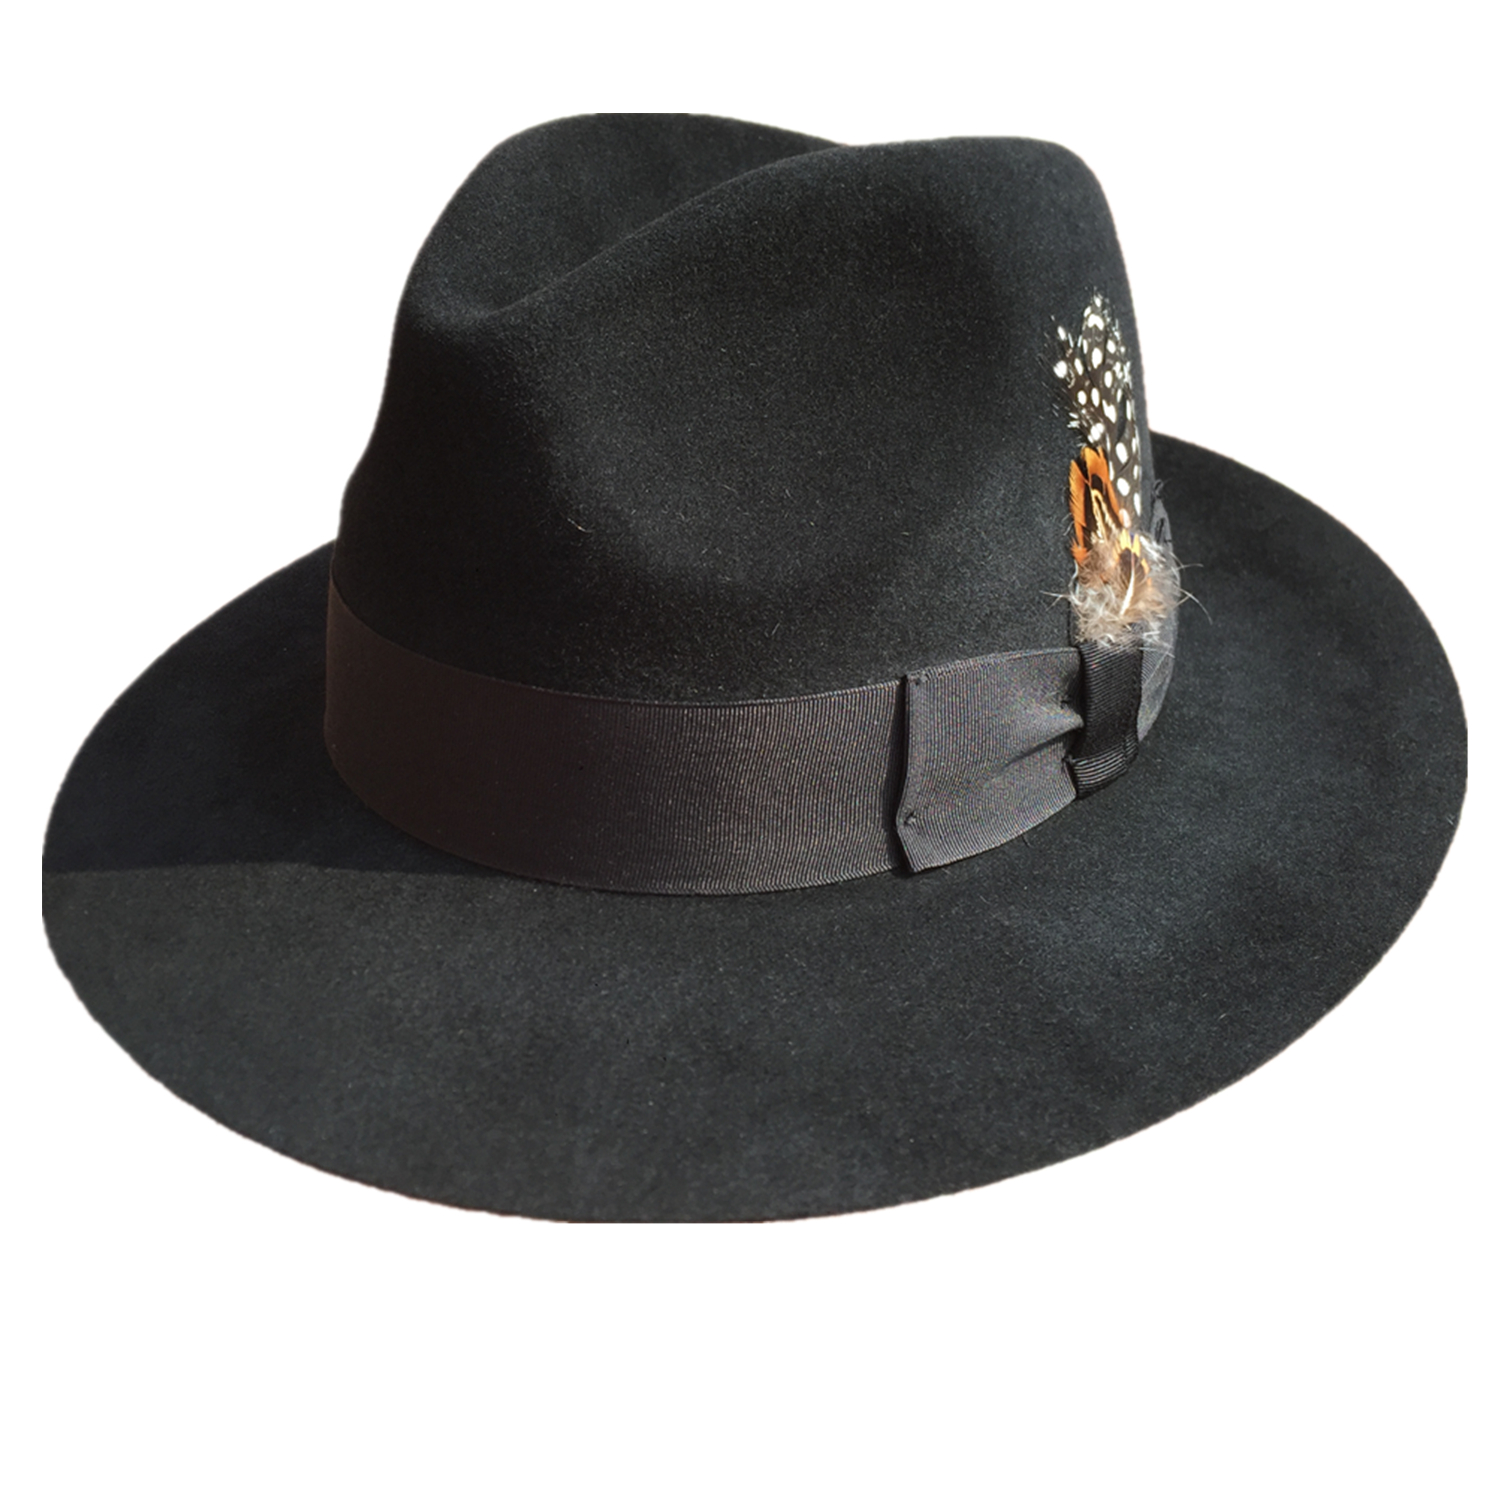 e6aff7f965be2 Luxury Angora Rabbit Fedora Hat Gangster Mobster Michael Jackson Gentleman  Hats Black Grey Colors